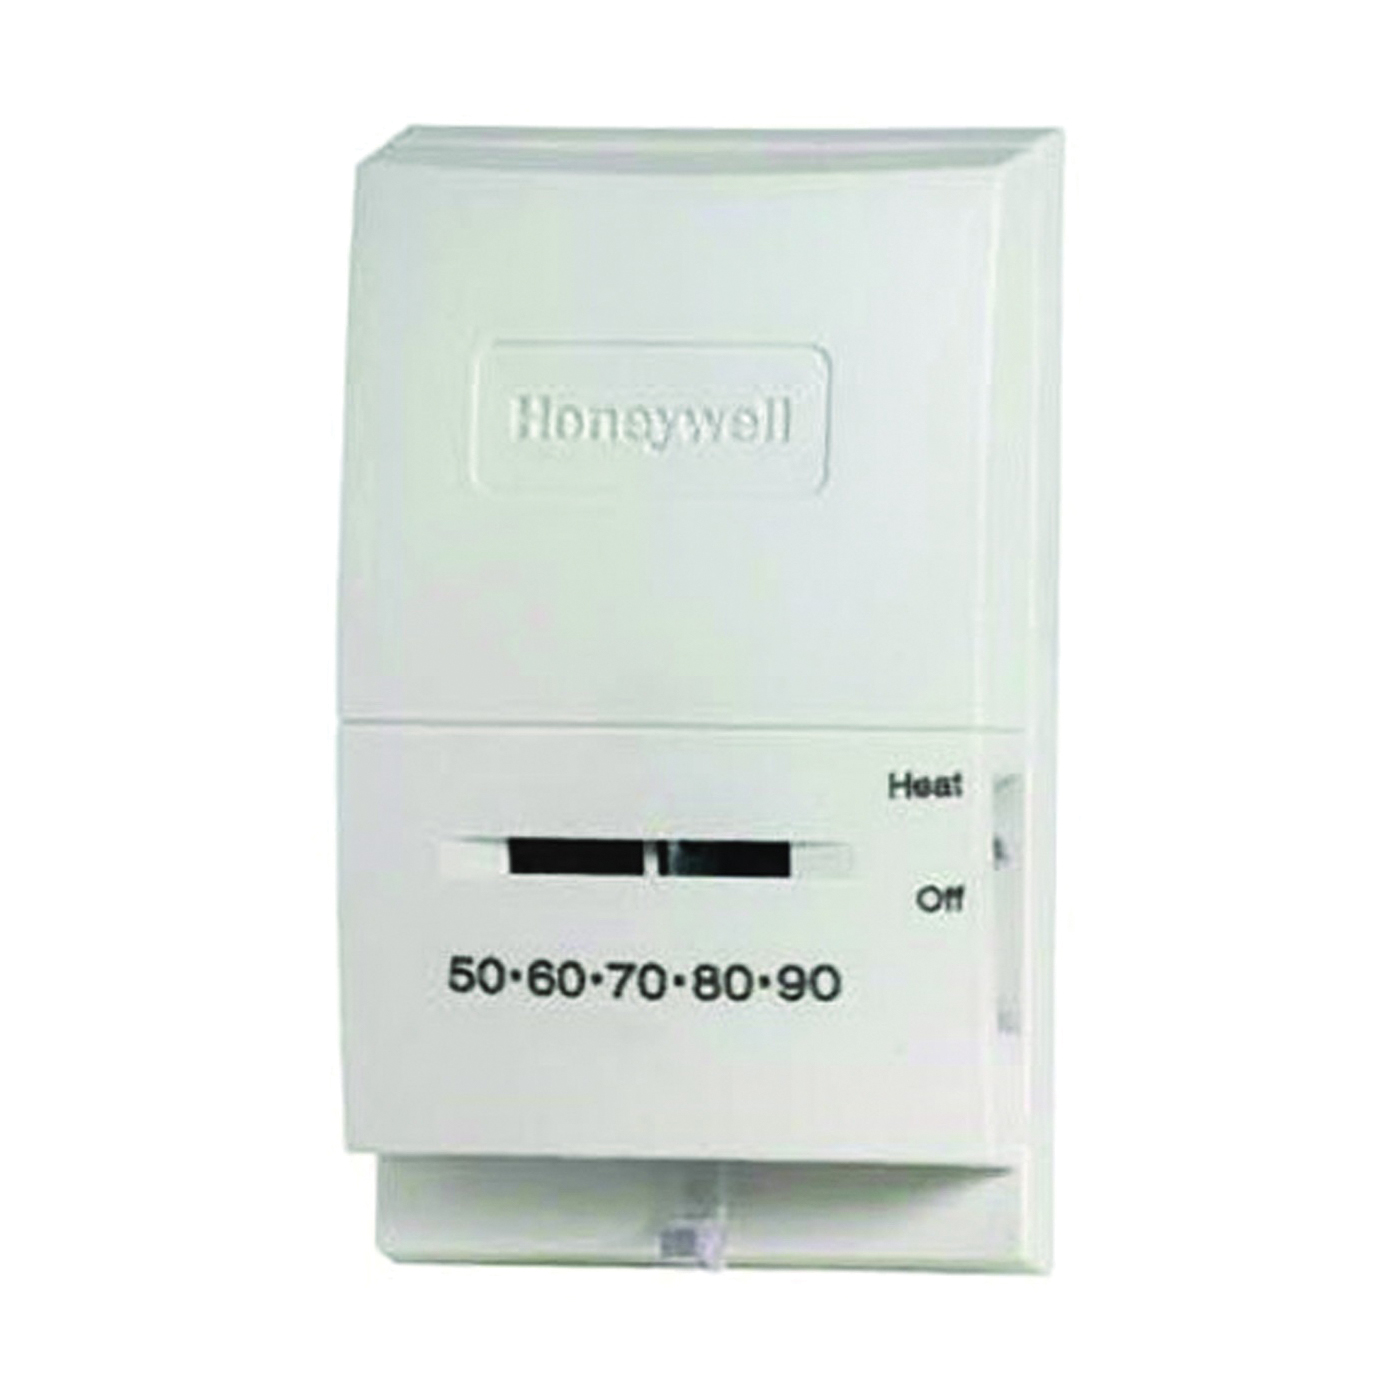 Honeywell CT53K1006/E1